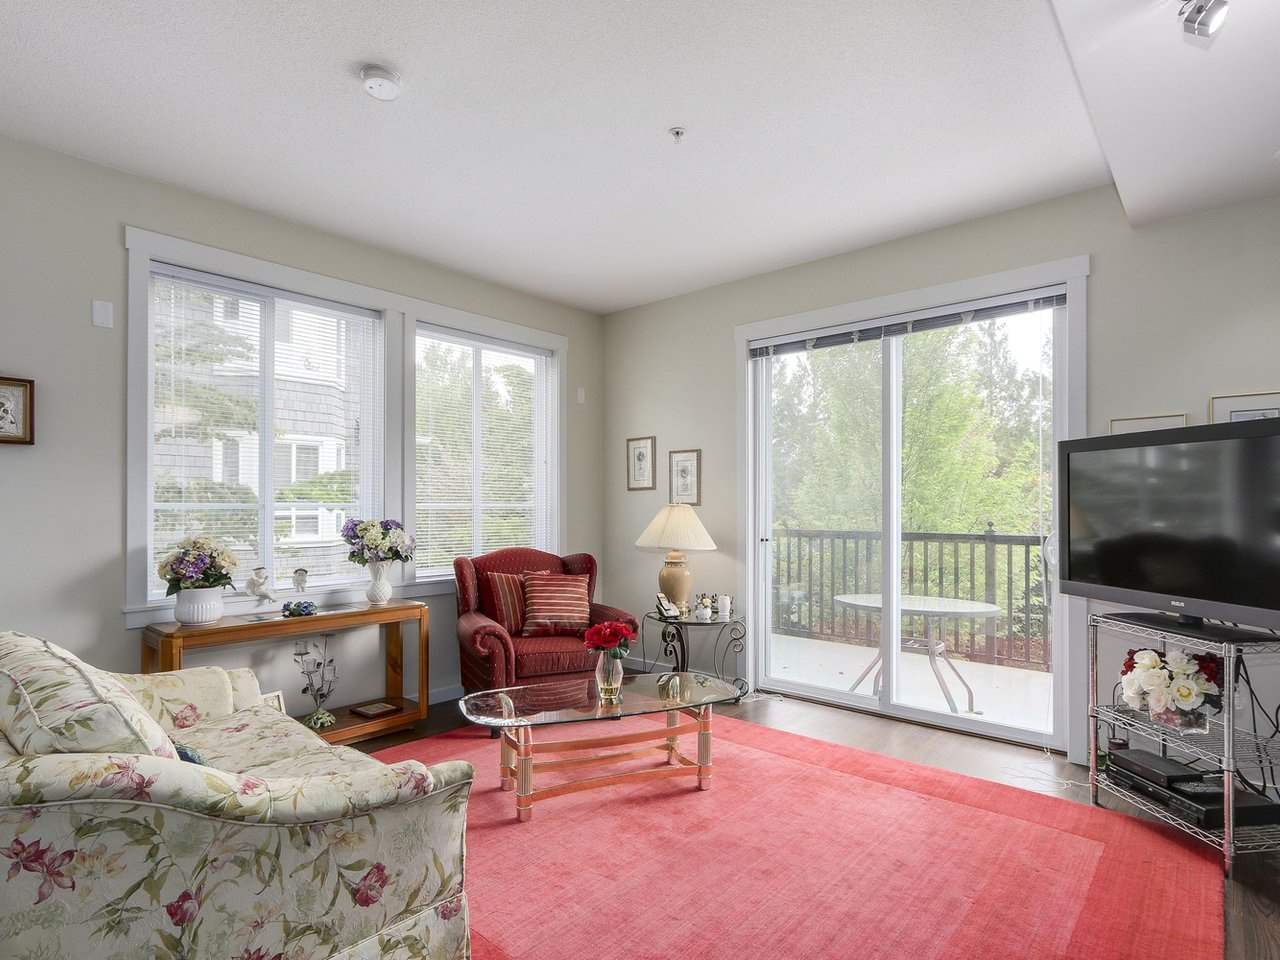 Photo 7: # 110 - 2418 Avon  Place in Port Coquitlam: Riverwood Townhouse for sale : MLS(r) # R2166312